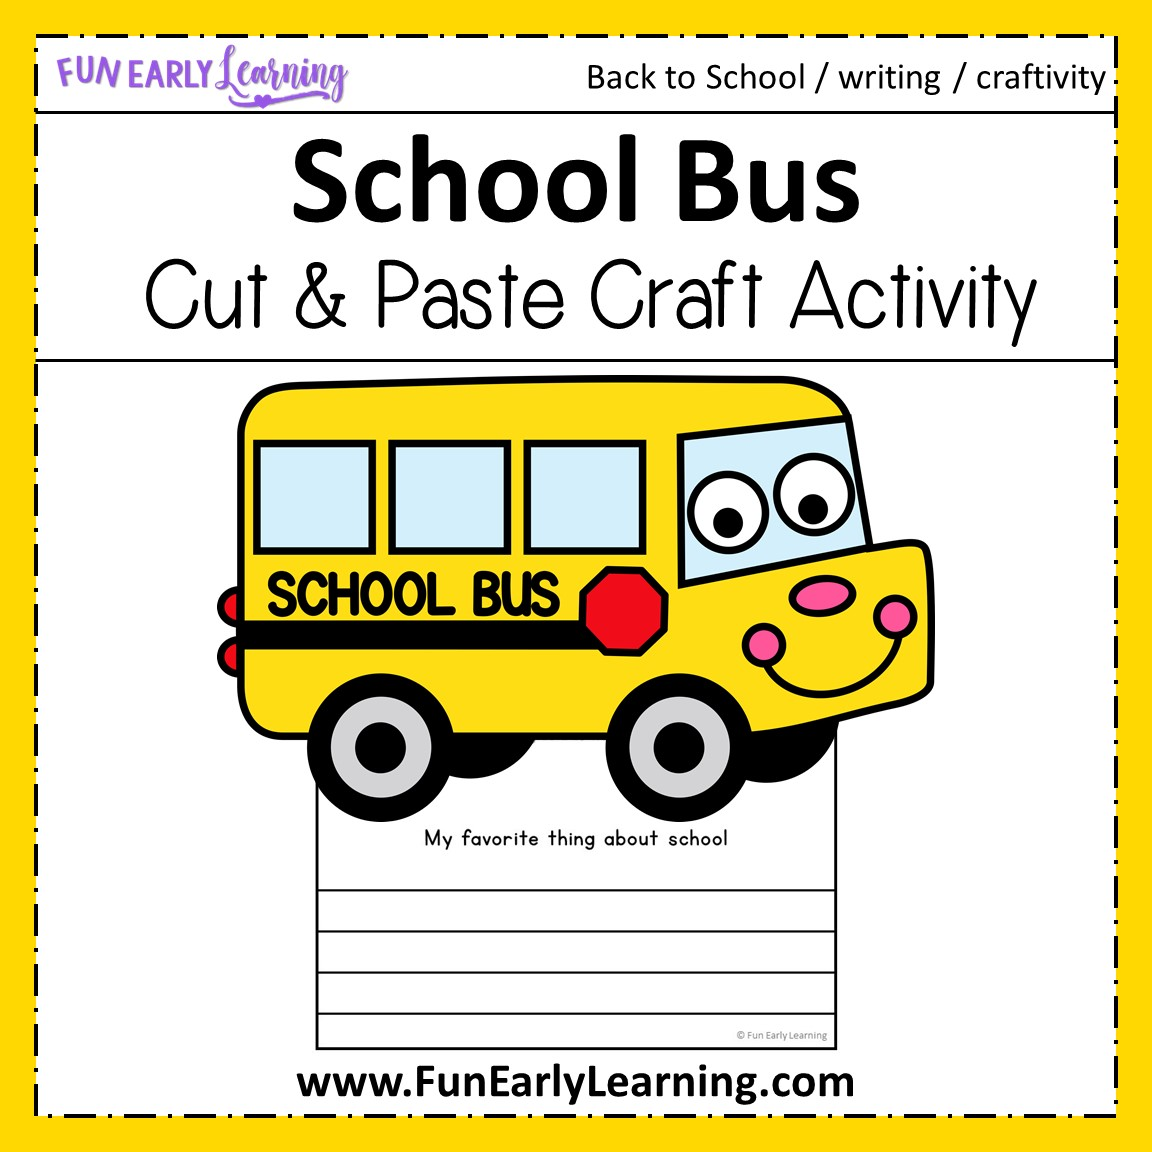 Back To School Bus Craft With Writing Prompts For Kids